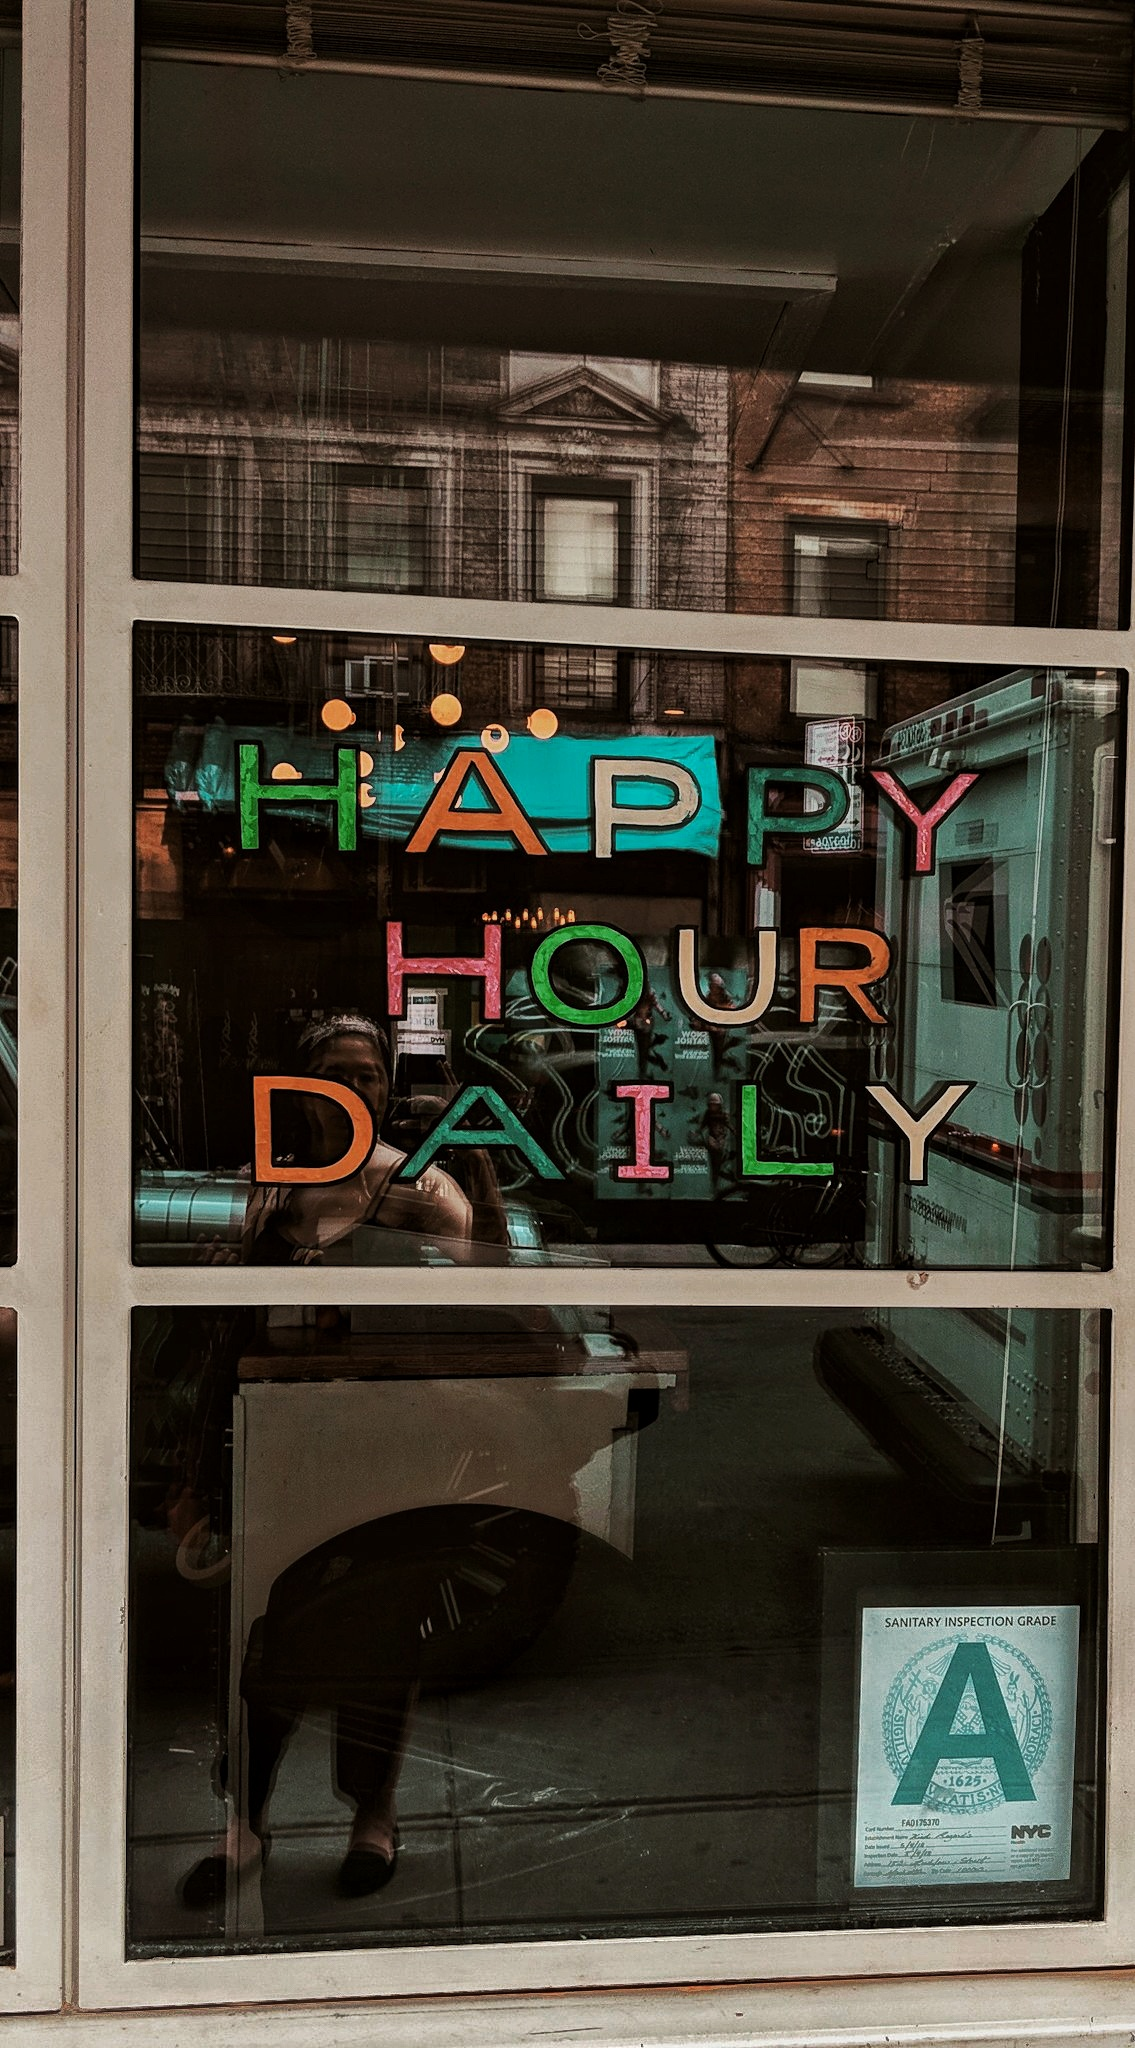 Yes, Happiness should be daily! Inframe   Kind Regards   in Lower East Side in Manhattan, NY. Highly recommend. $1 oysters All day, Everyday!!